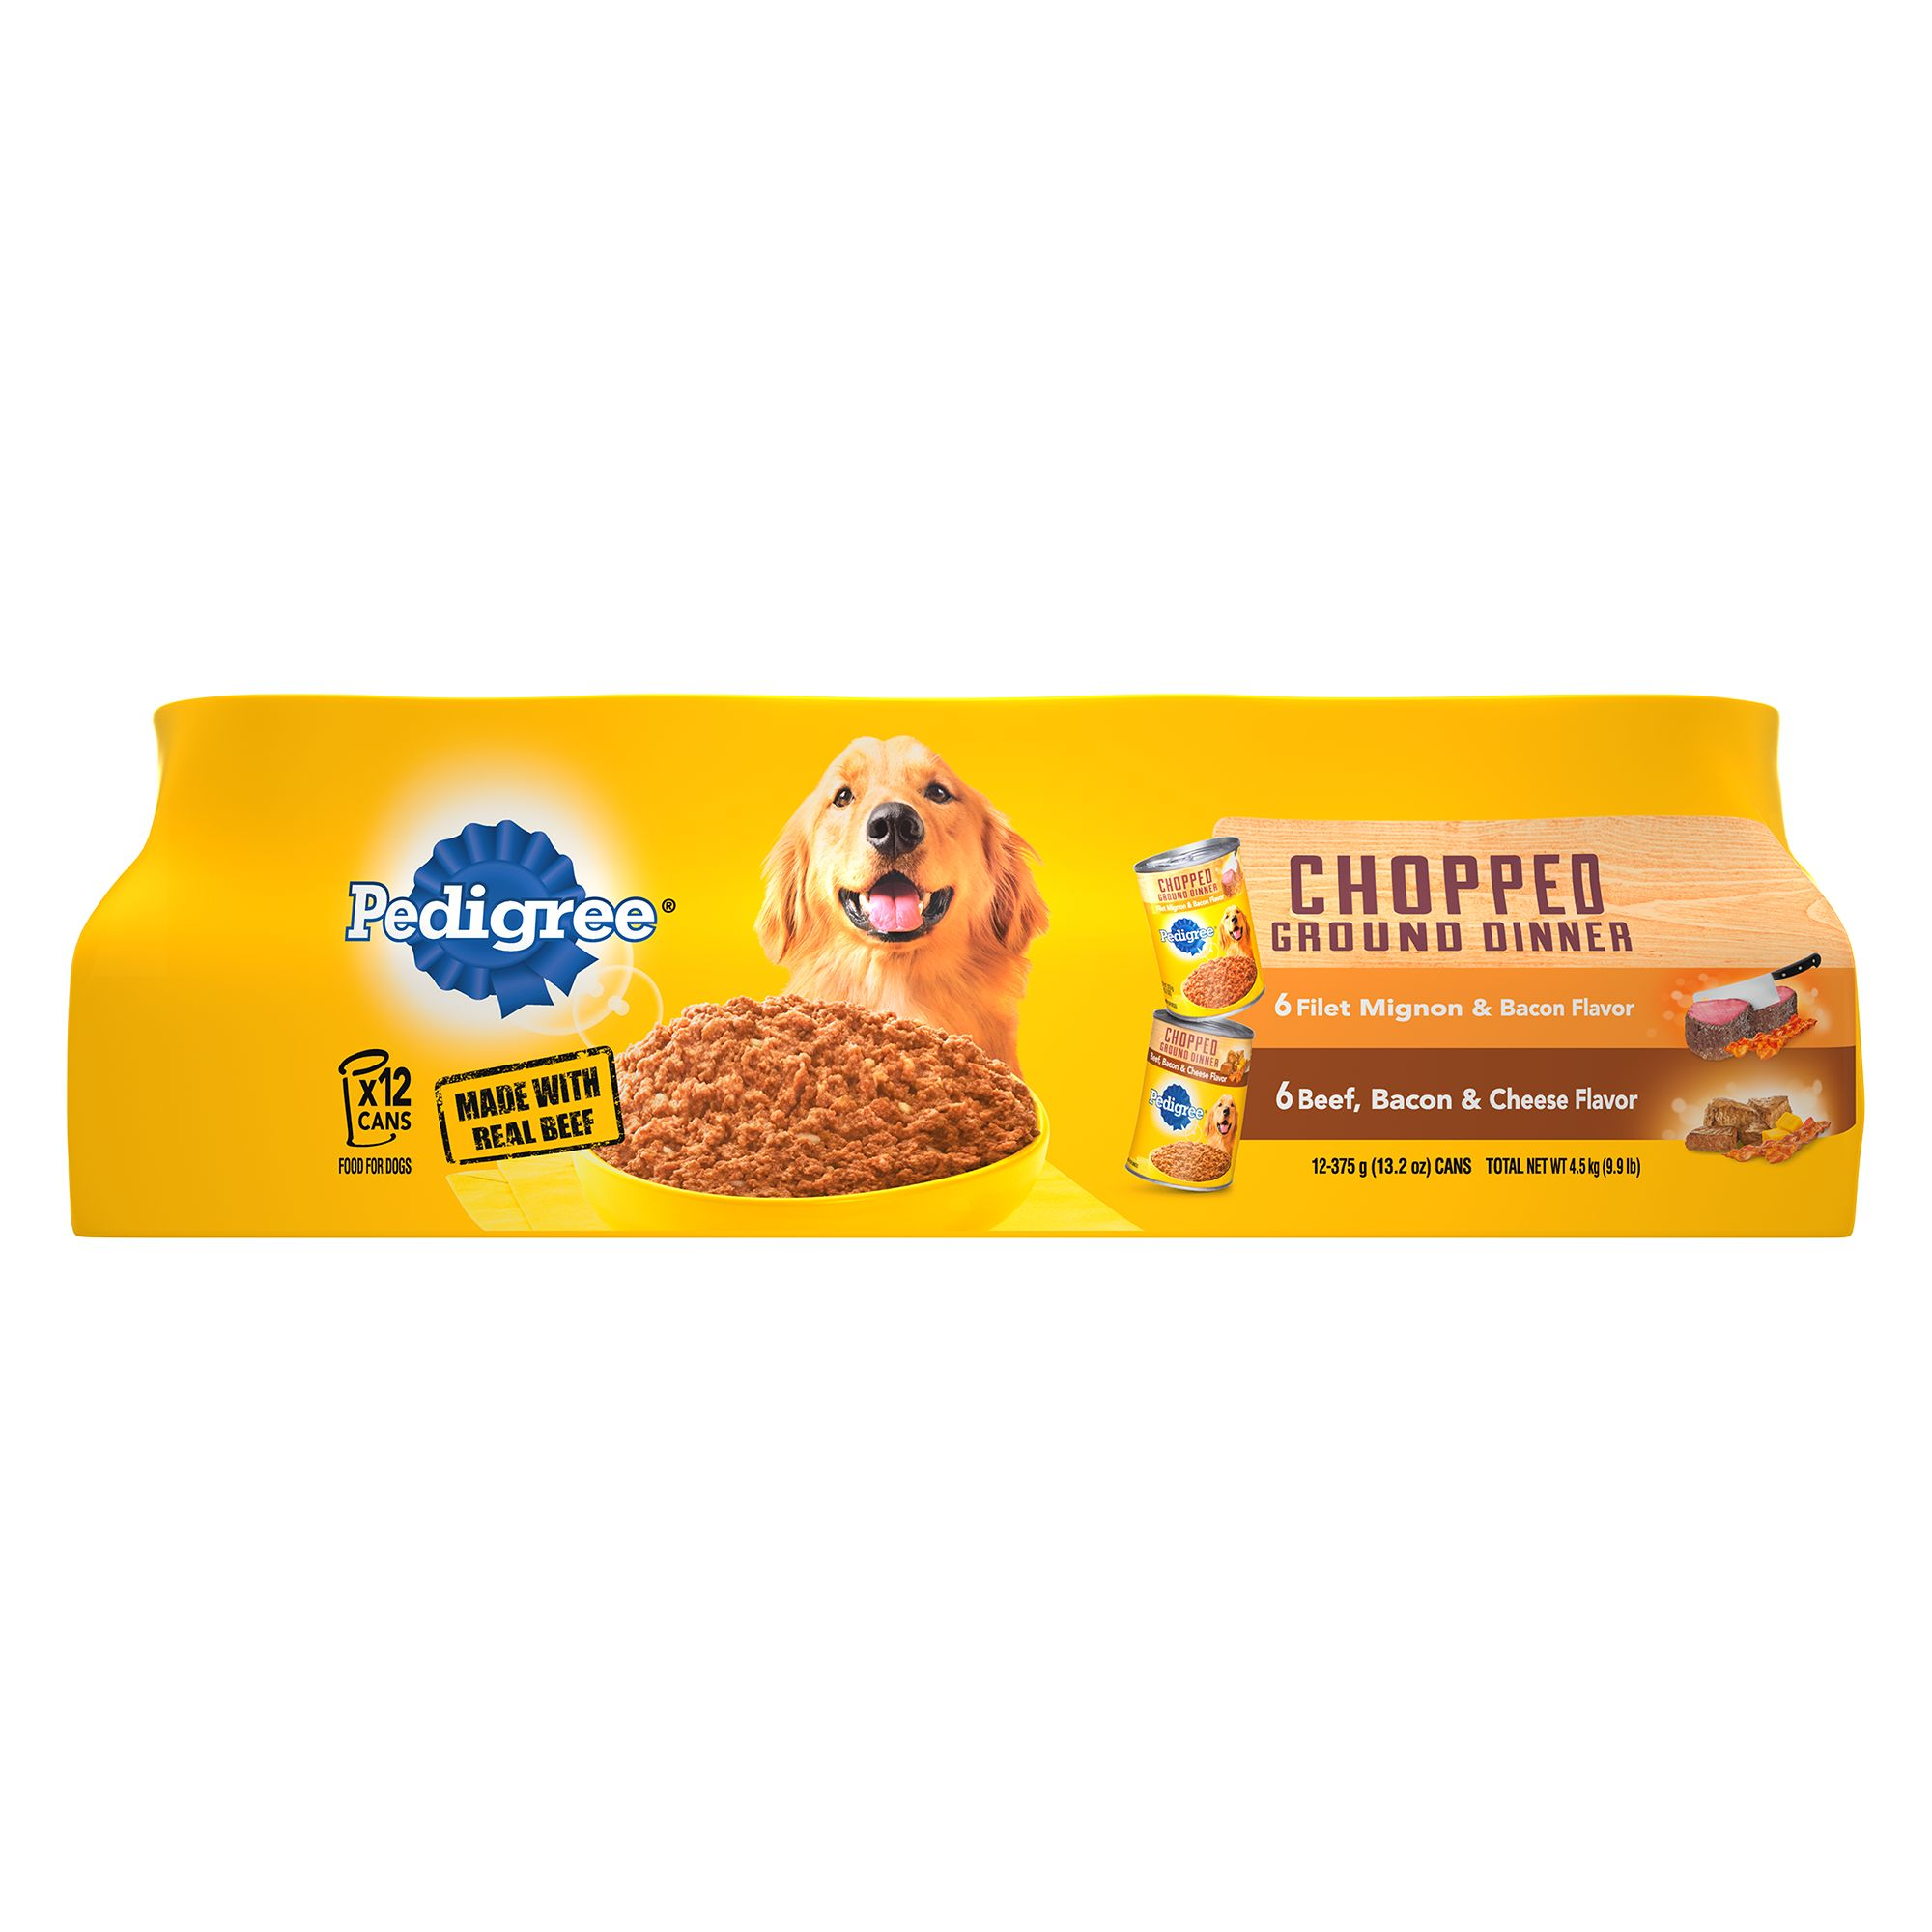 Pedigree® Adult Dog Food - Chopped/Chunky Ground Dinner Variety Pack, 12ct 5262194